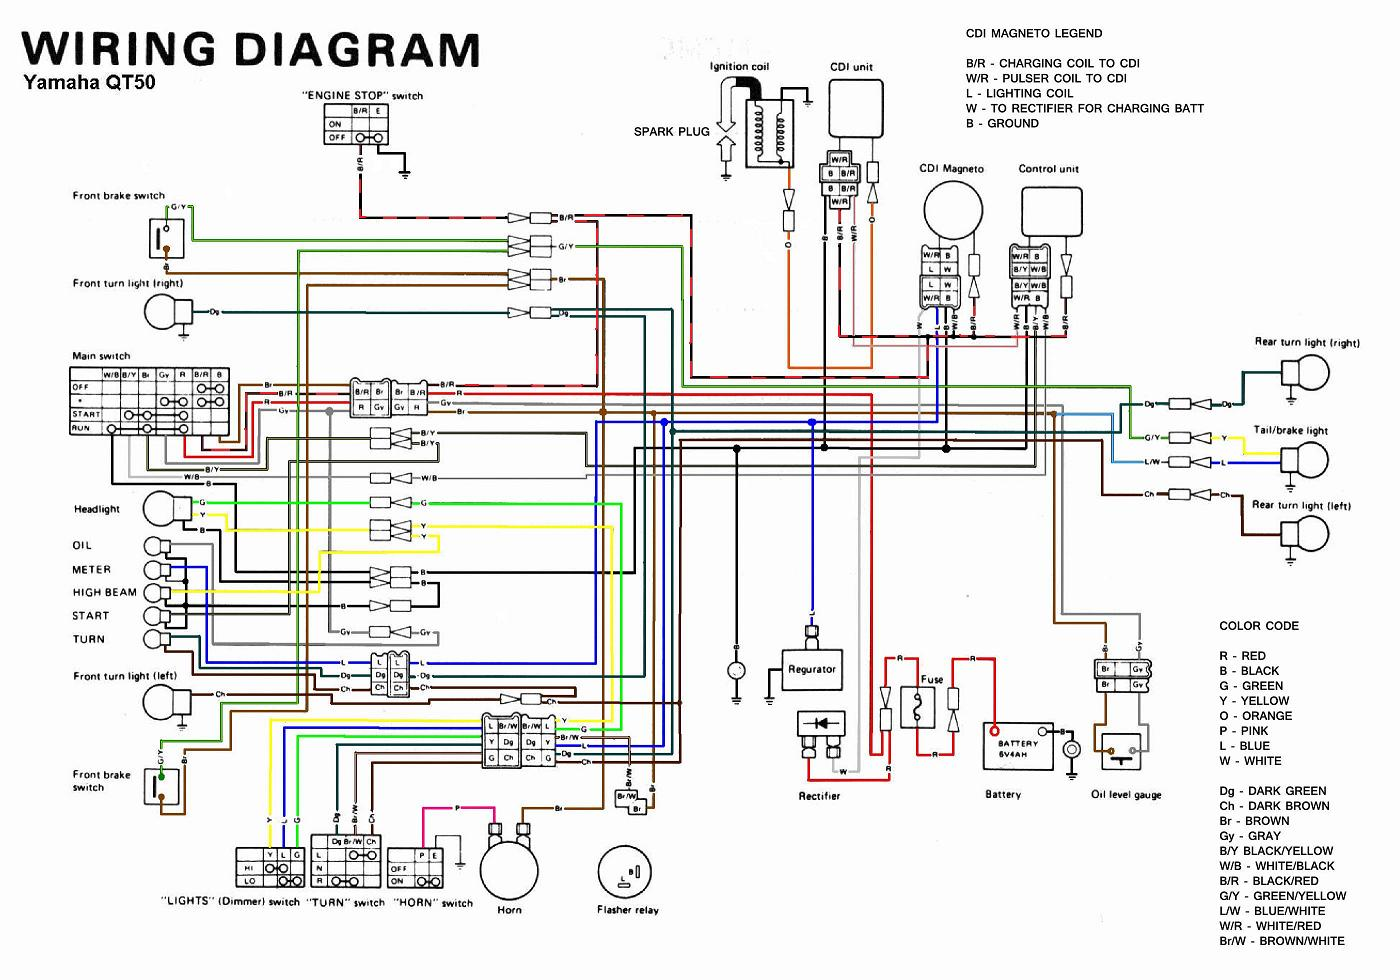 Yamaha QT50 Wiring Diagram wiring diagram for a wiring diagram for ima \u2022 wiring diagrams j 2003 Dodge Caravan Wiring Schematic at edmiracle.co